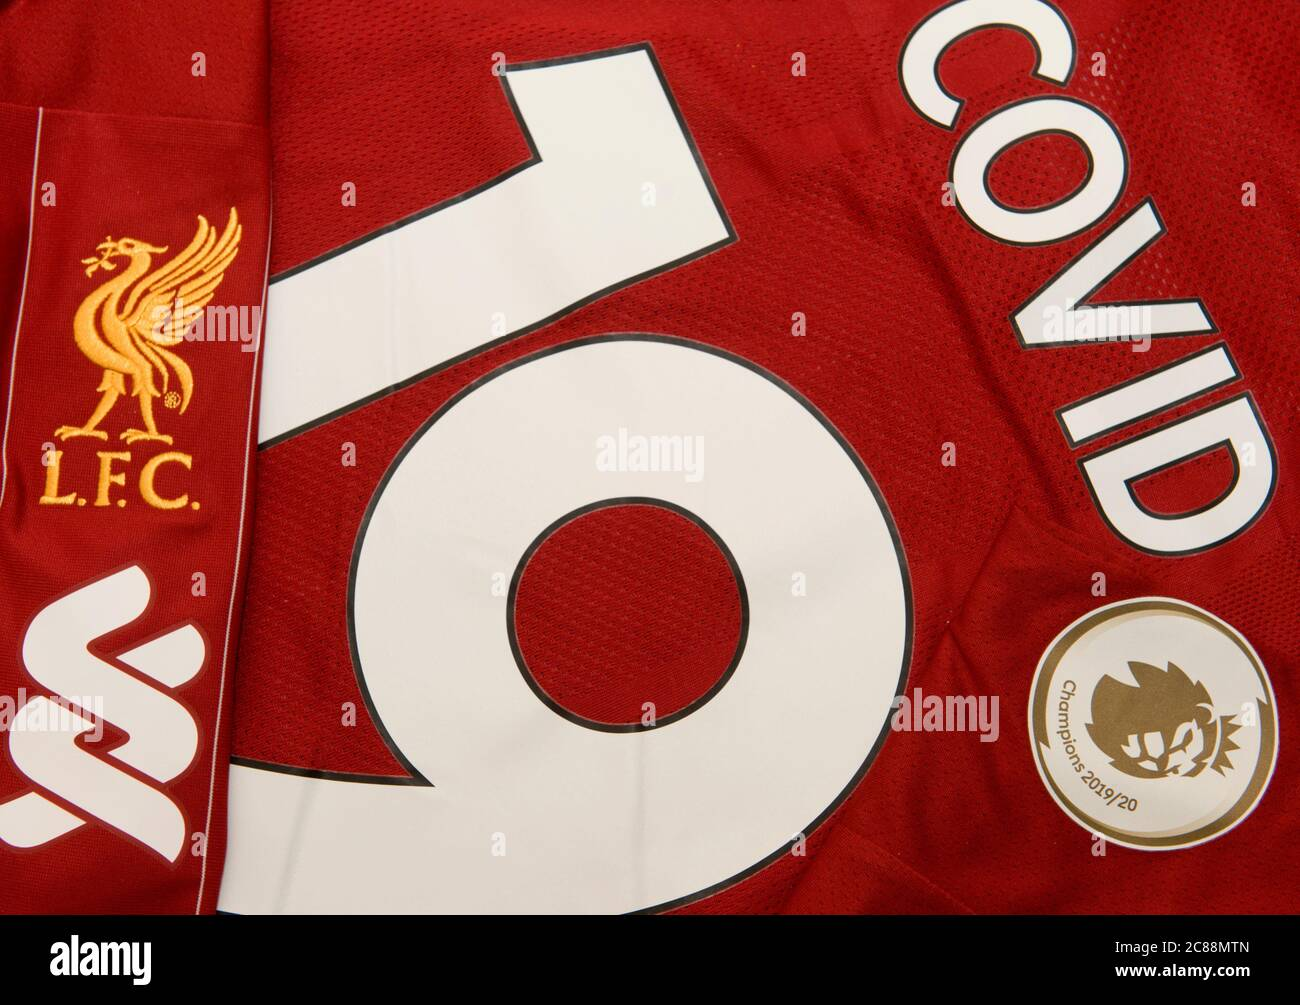 Liverpool Fc Logo High Resolution Stock Photography And Images Alamy